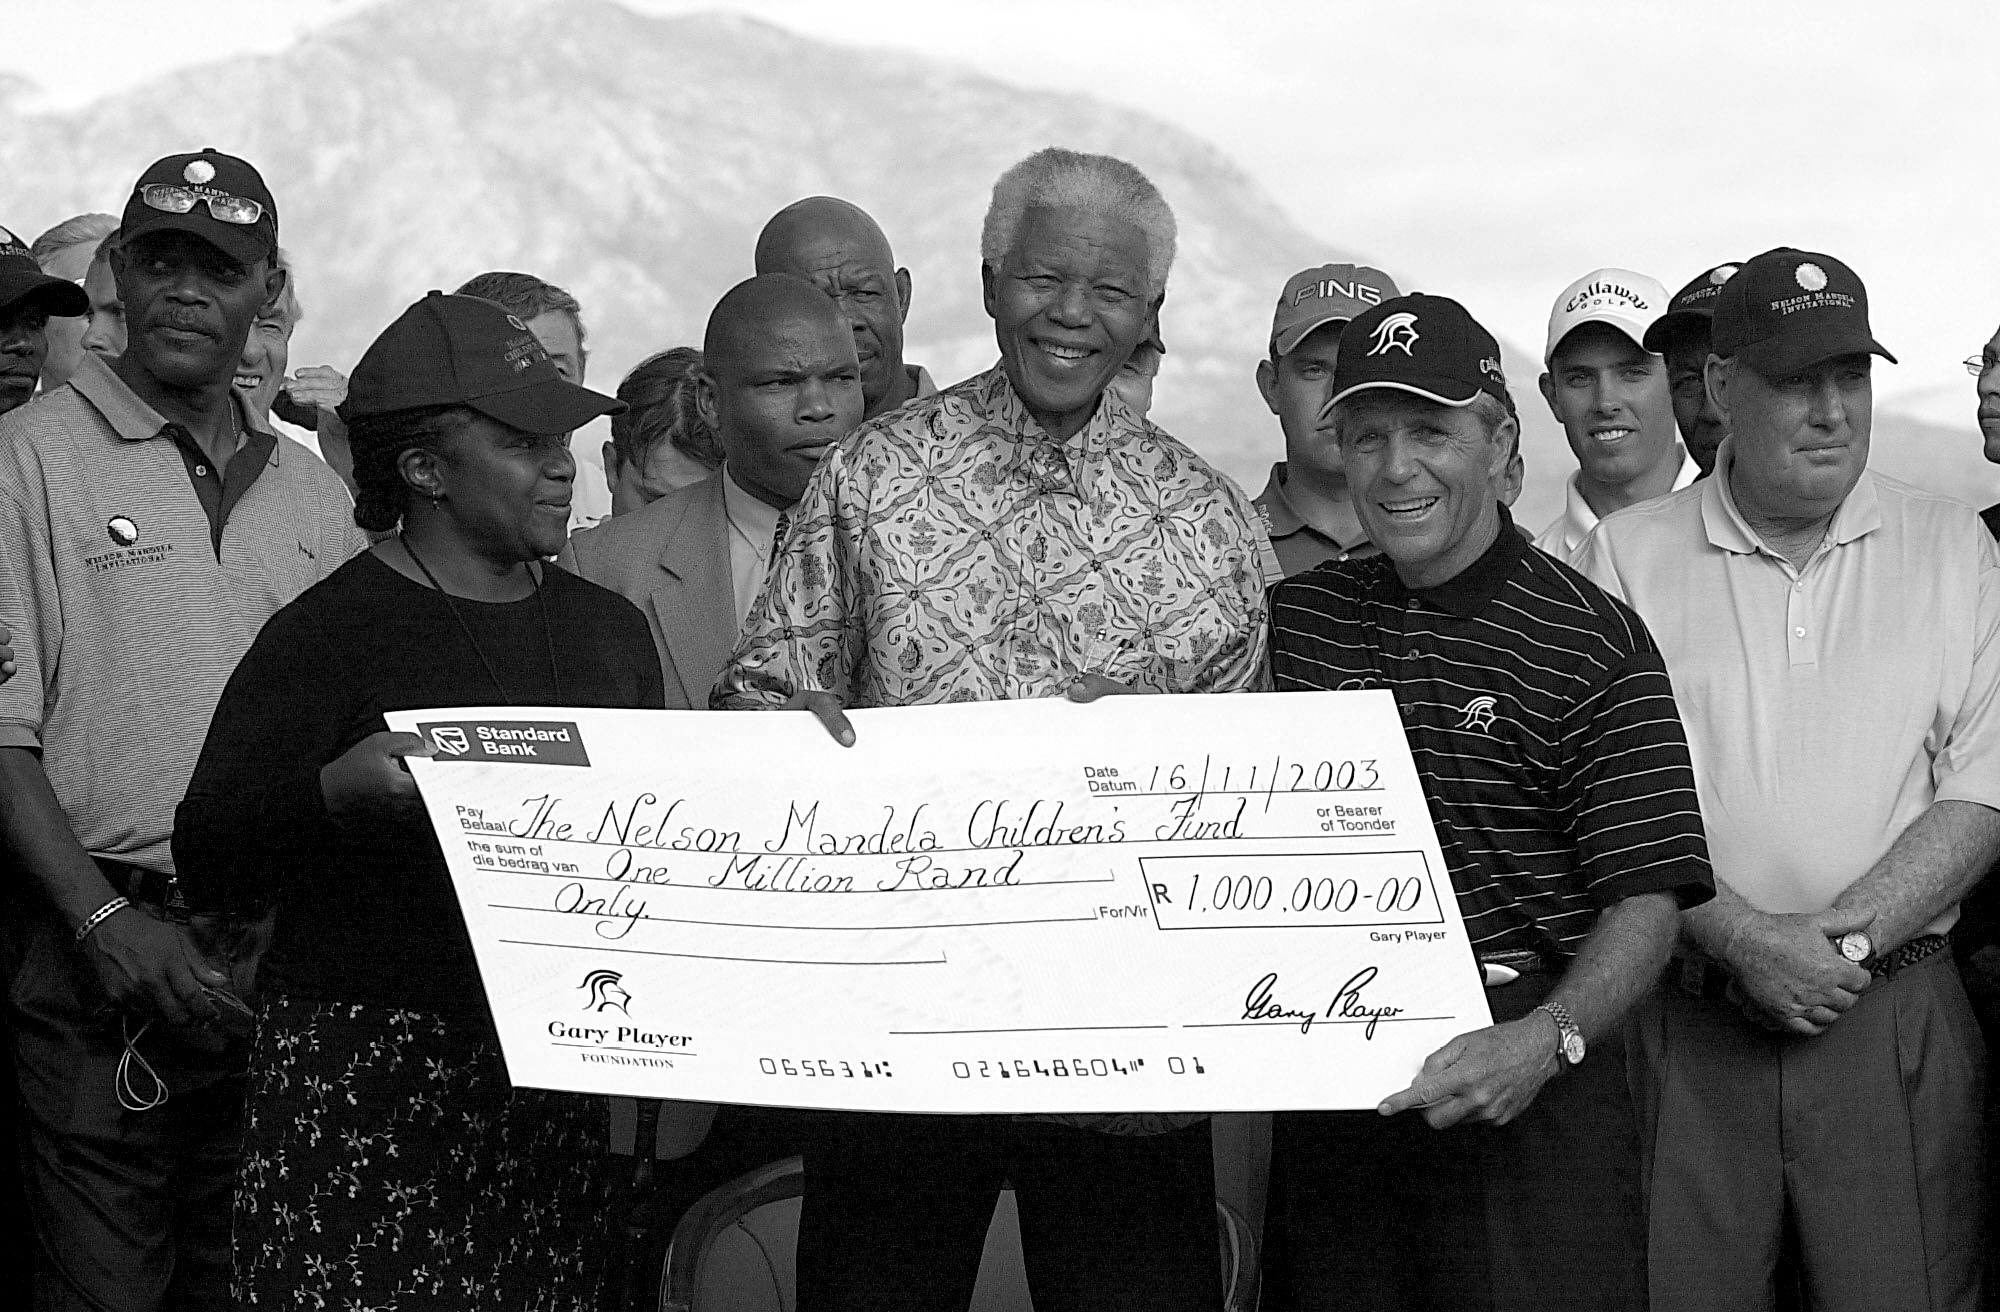 Gary Player presenting a donation to Nelson Mandela